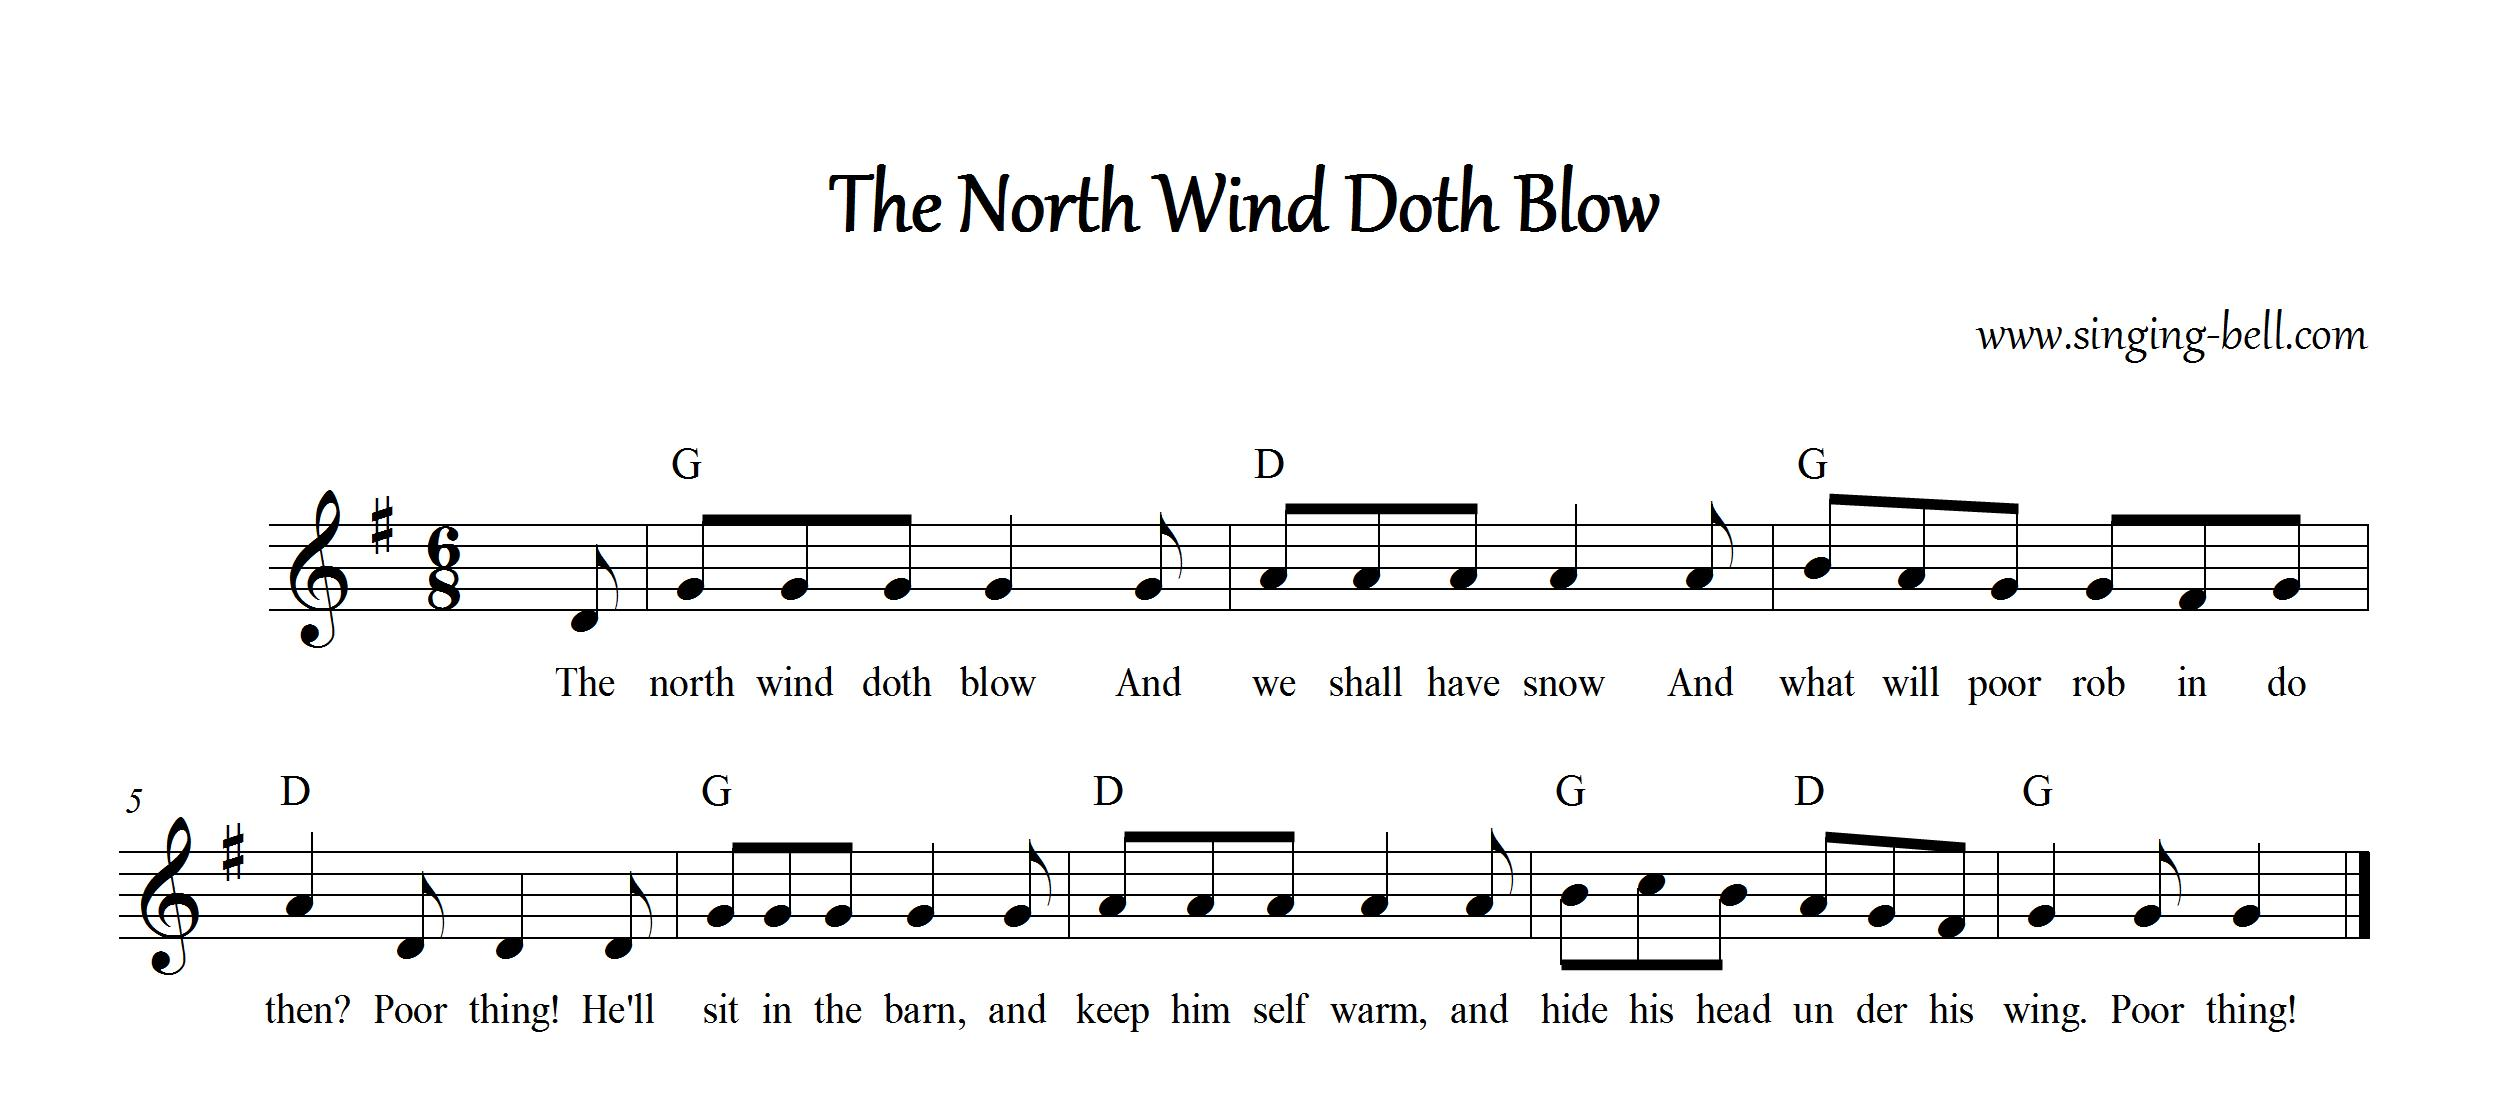 The North Wind Doth Blow Free Nursery Rhyme Music Score in G